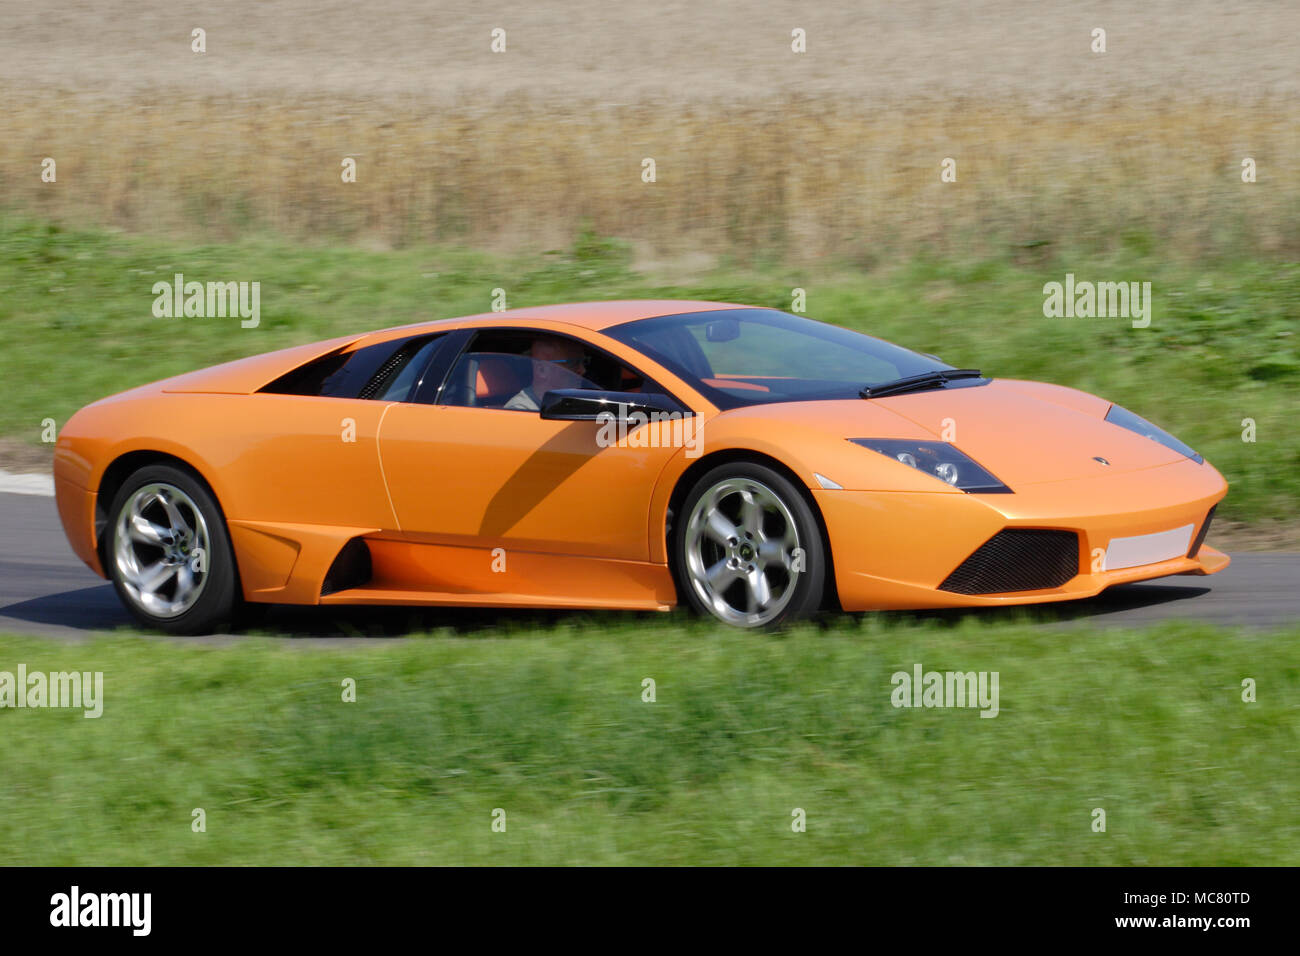 Orange Lamborghini Murcielago Driving Fast Stock Photo 179655853